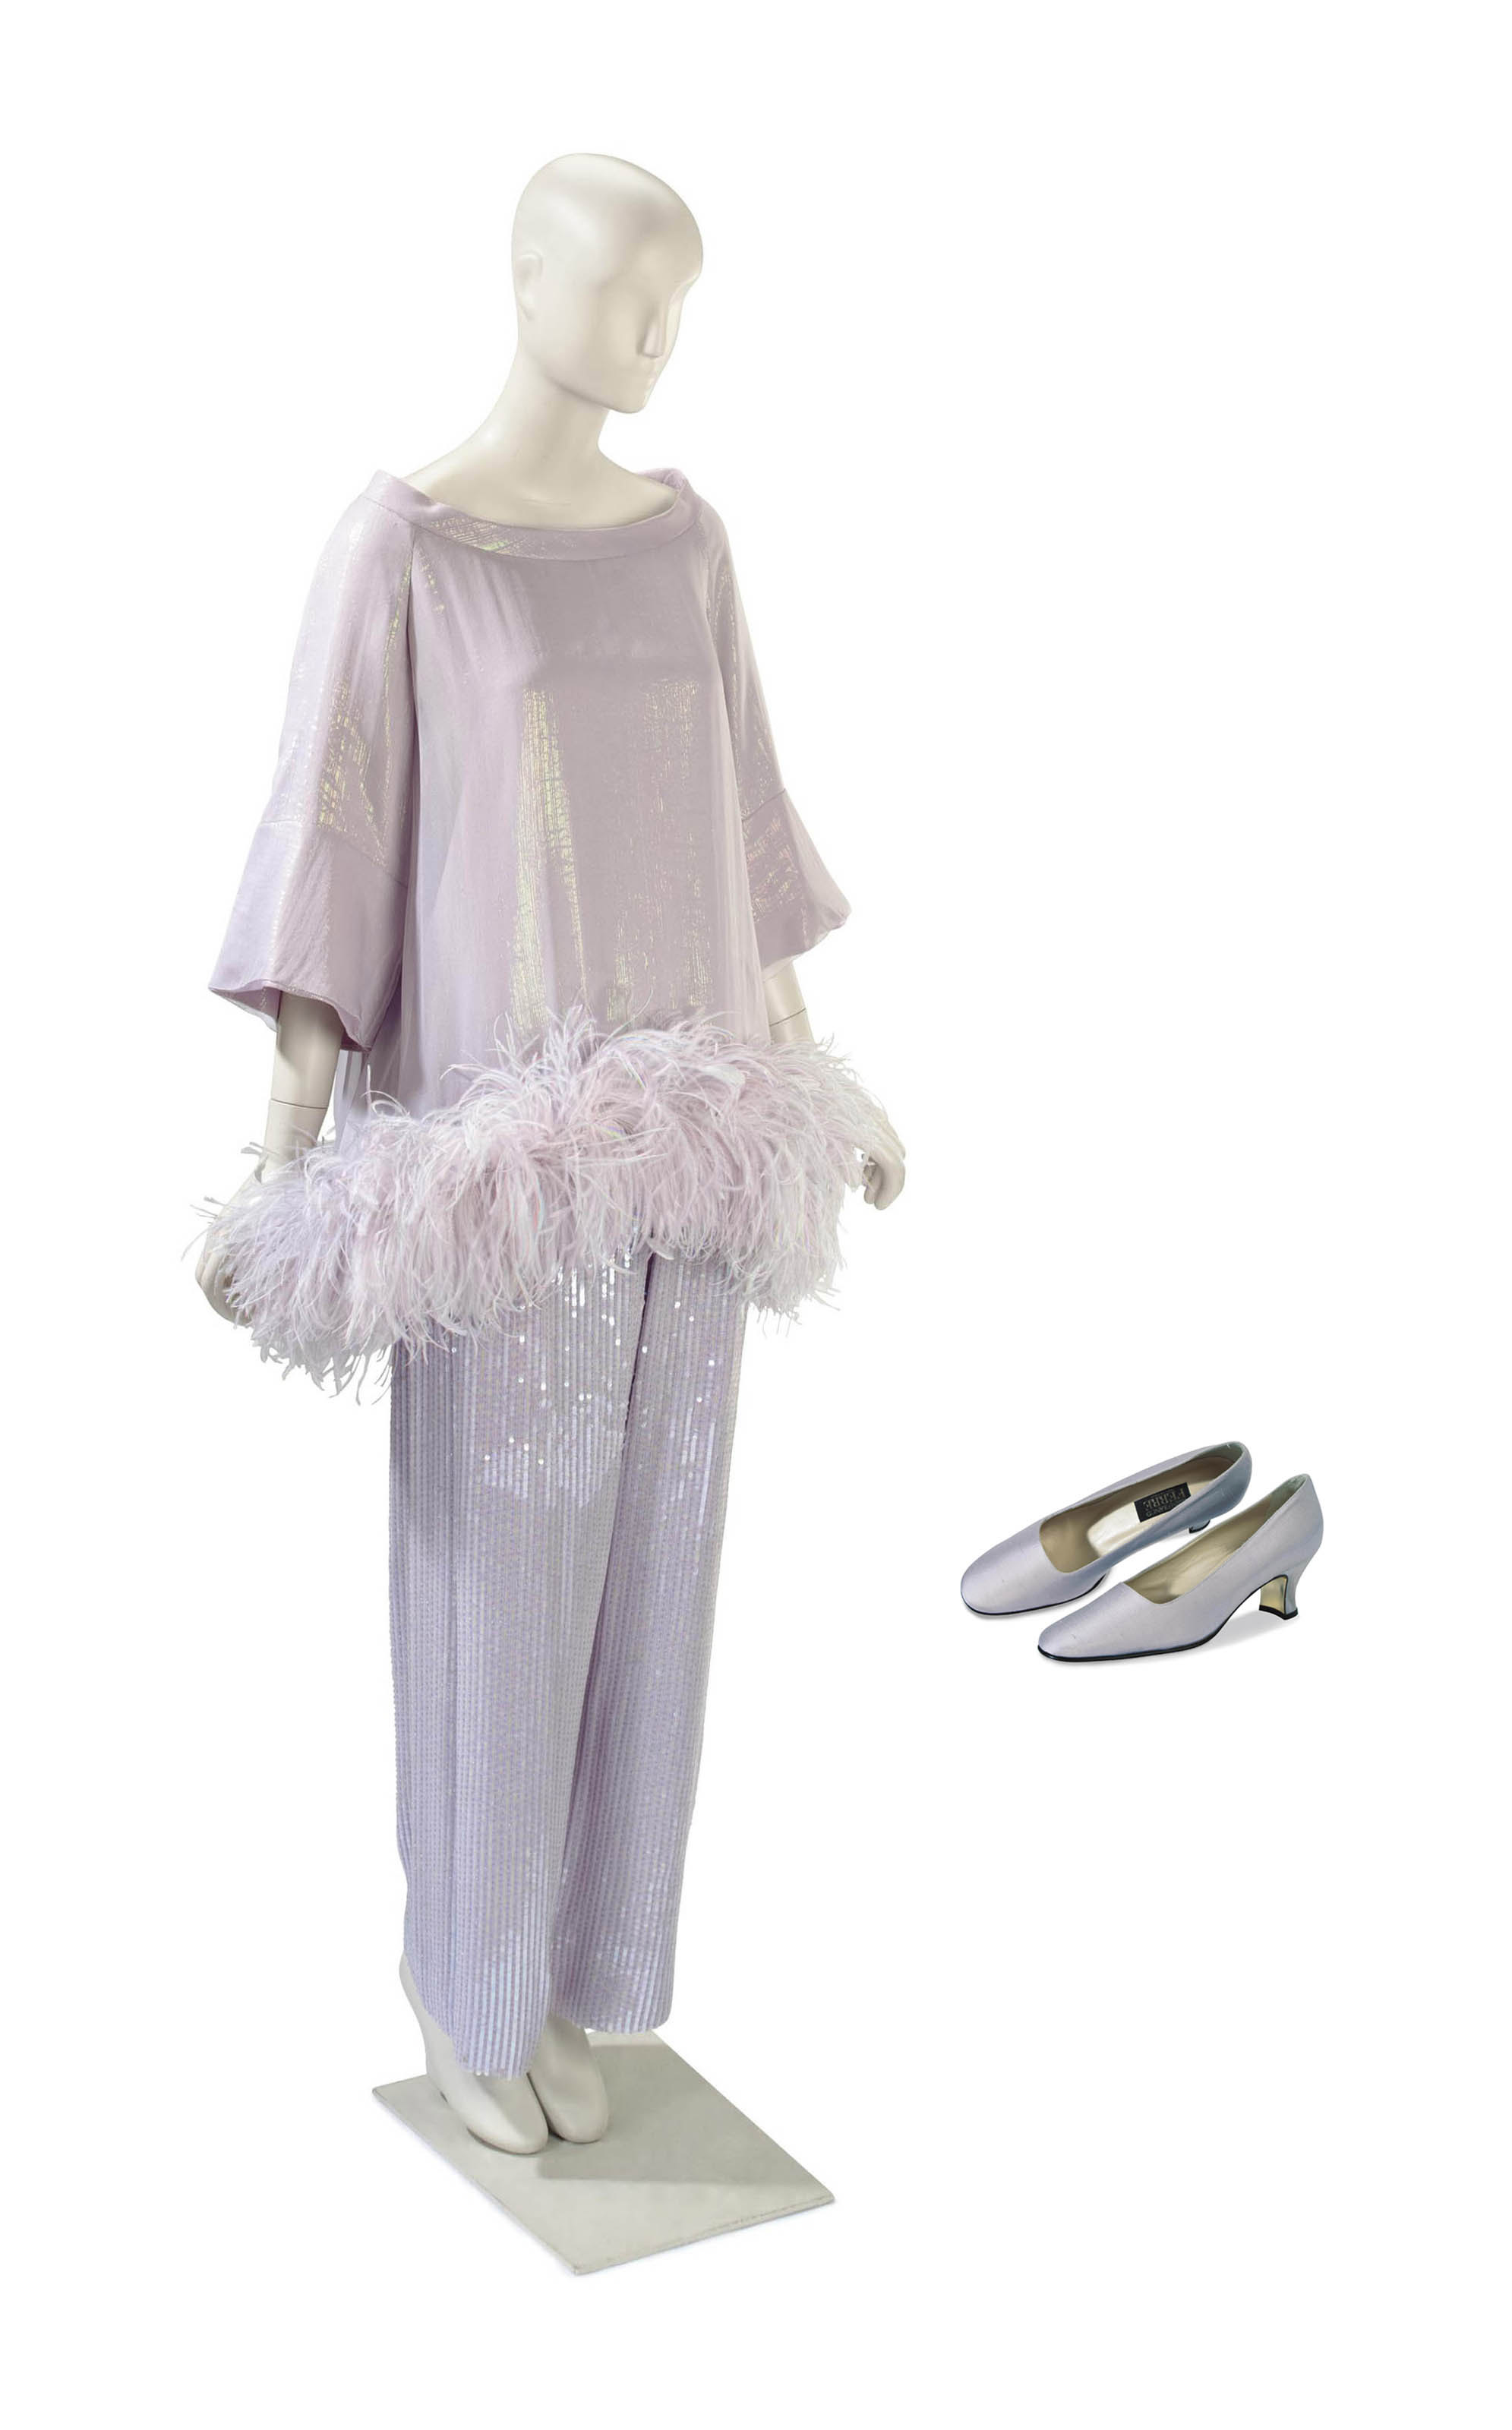 A GIANFRANCO FERRÉ EVENING LILAC TROUSER SUIT